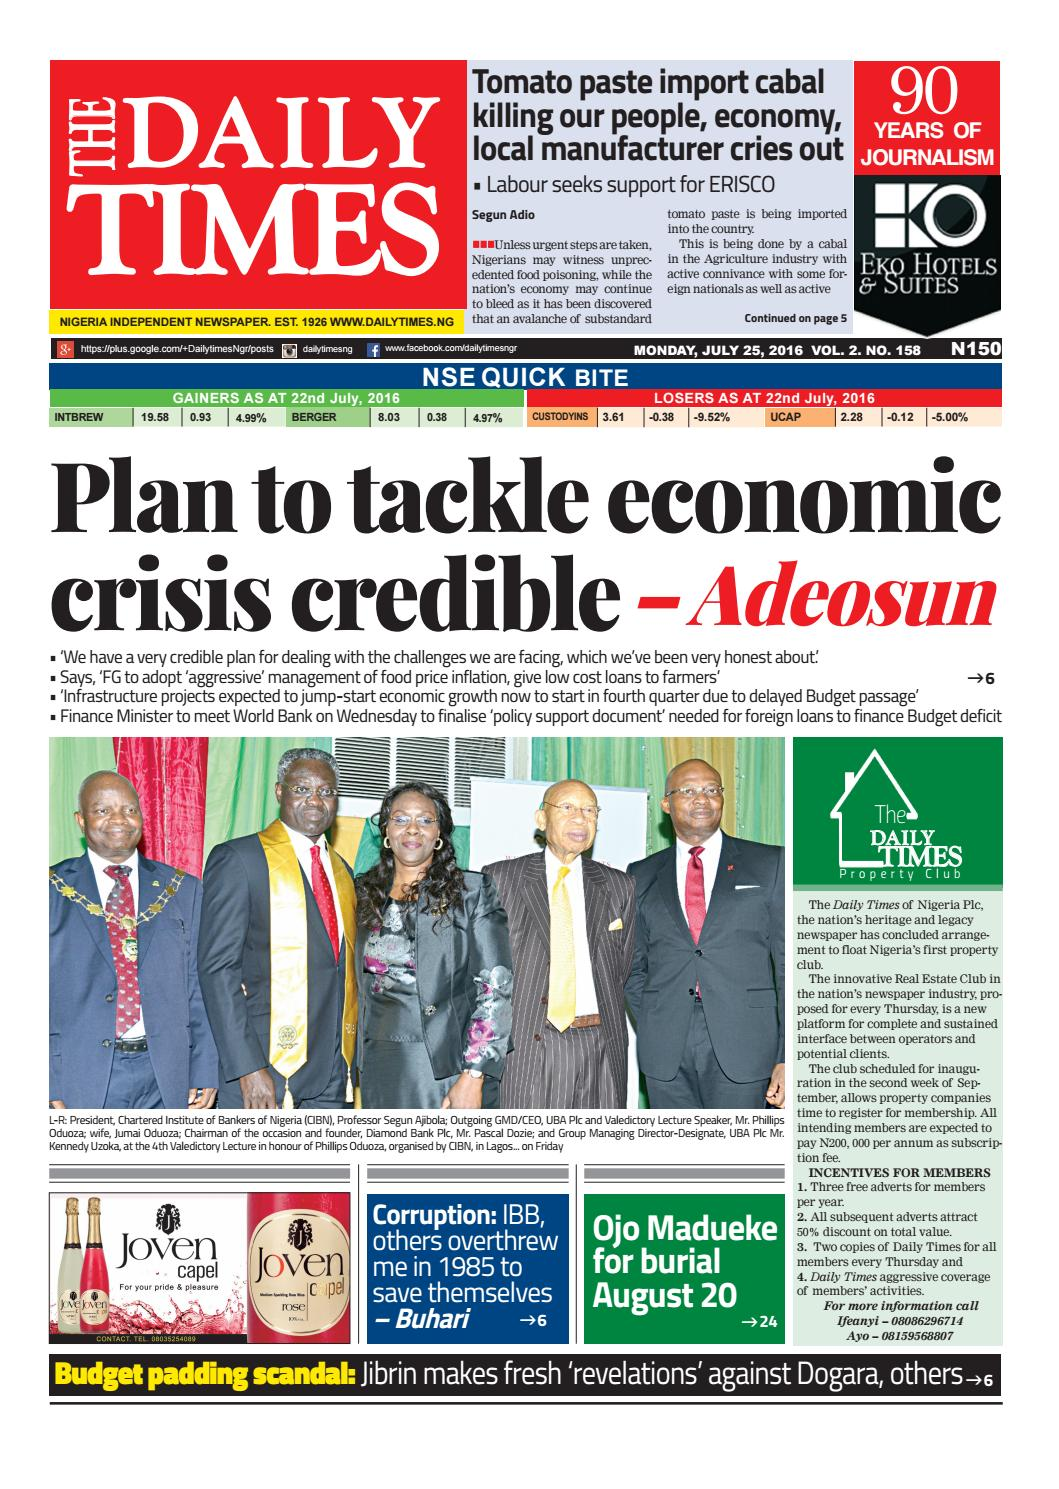 Dtn 25 7 16 by Daily Times of Nigeria - issuu